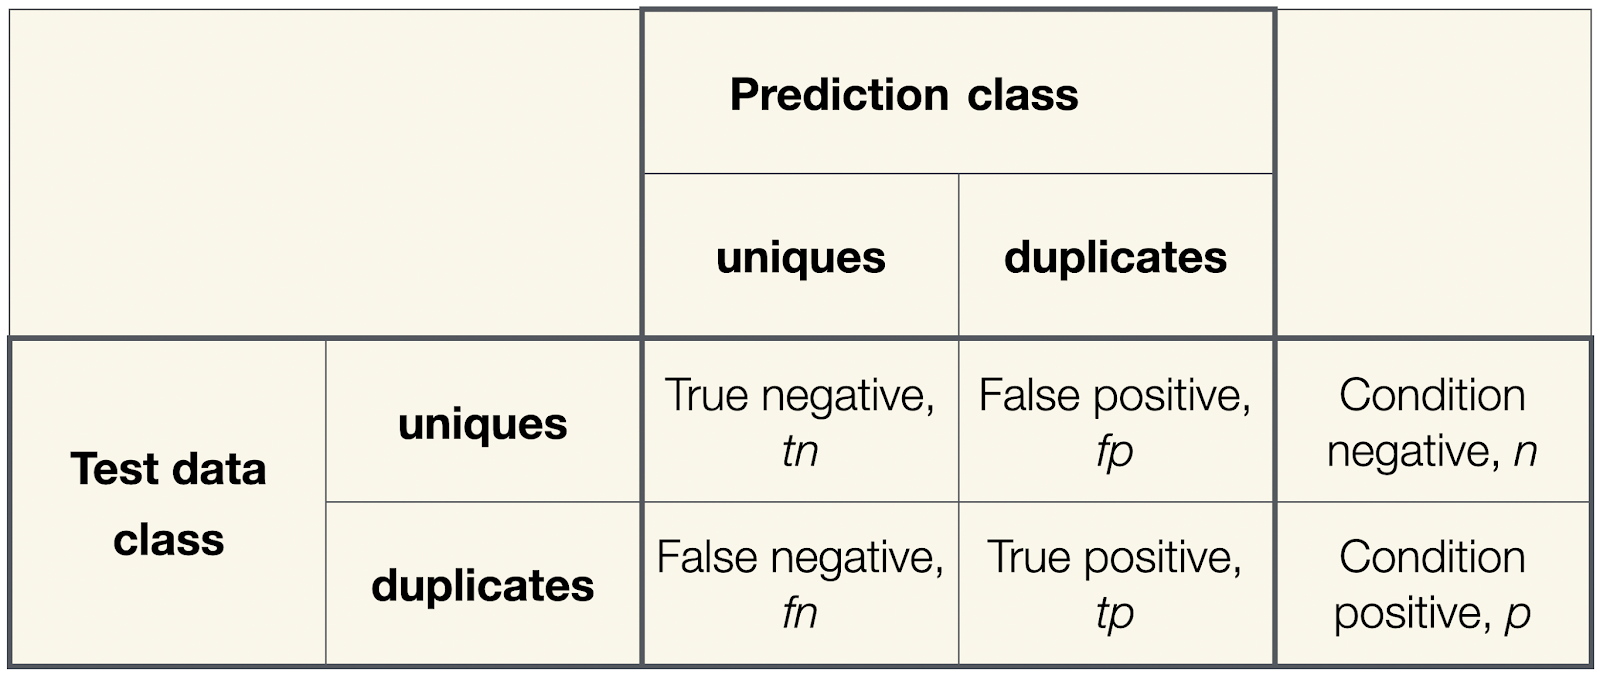 Figure 4: Confusion matrix